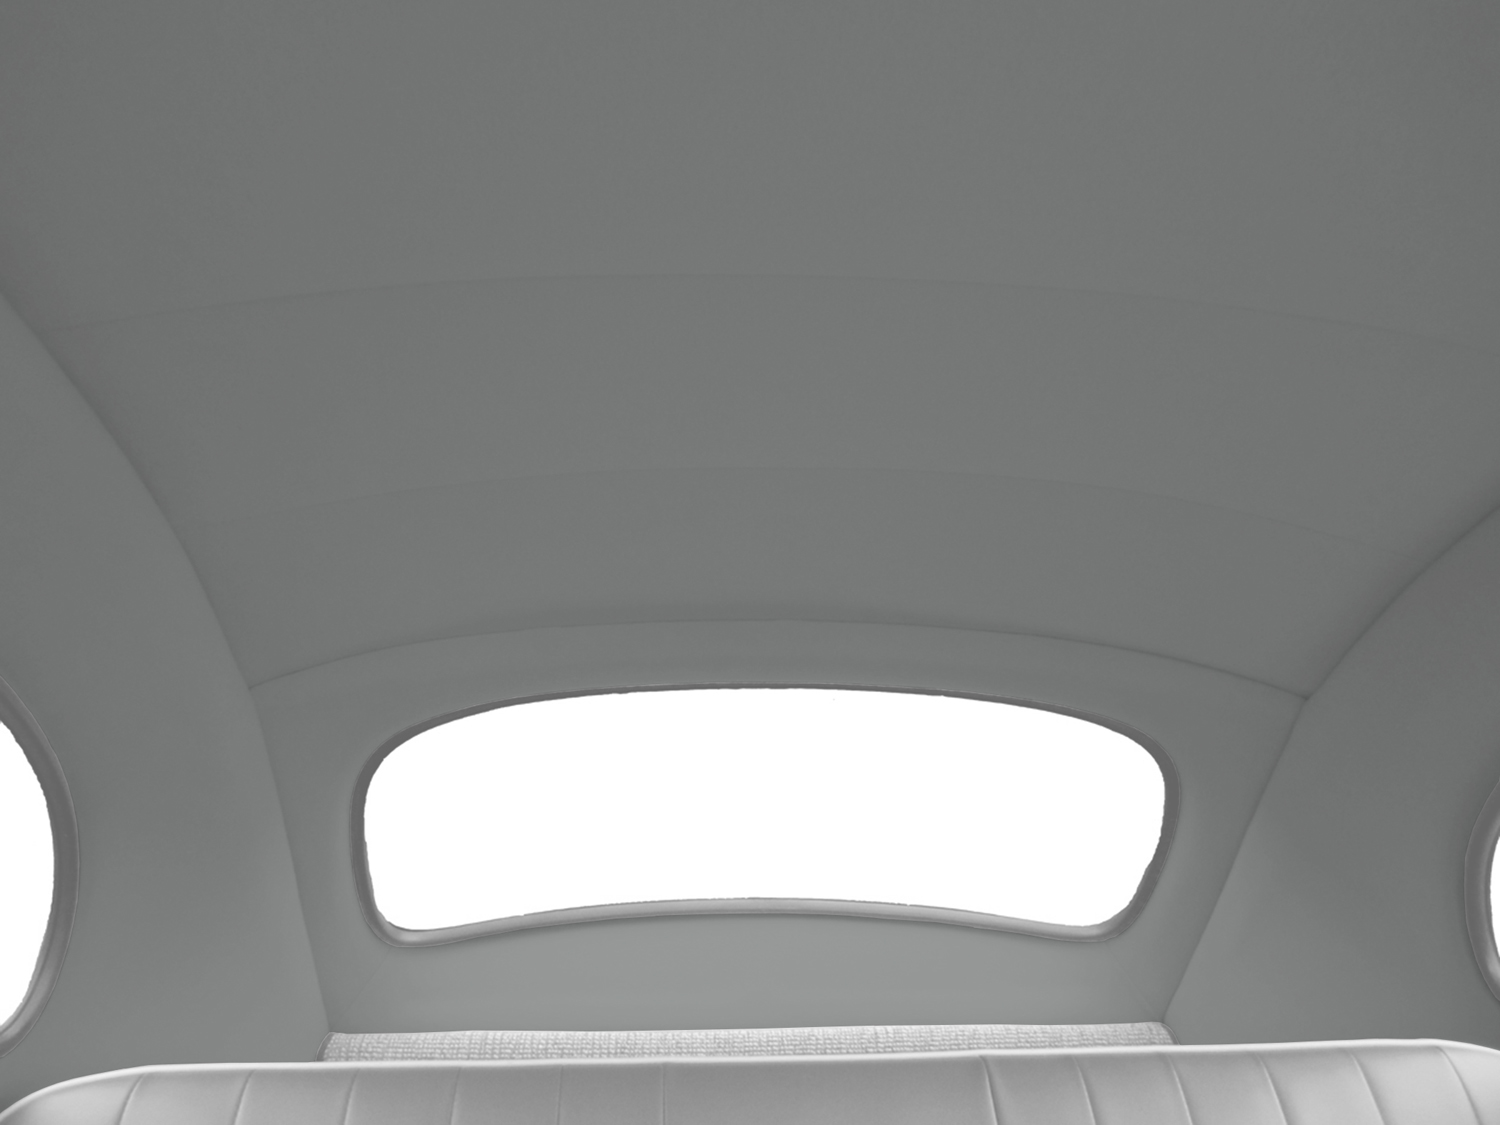 1963 Volkswagen Beetle Solid Roof Headliner Vw18